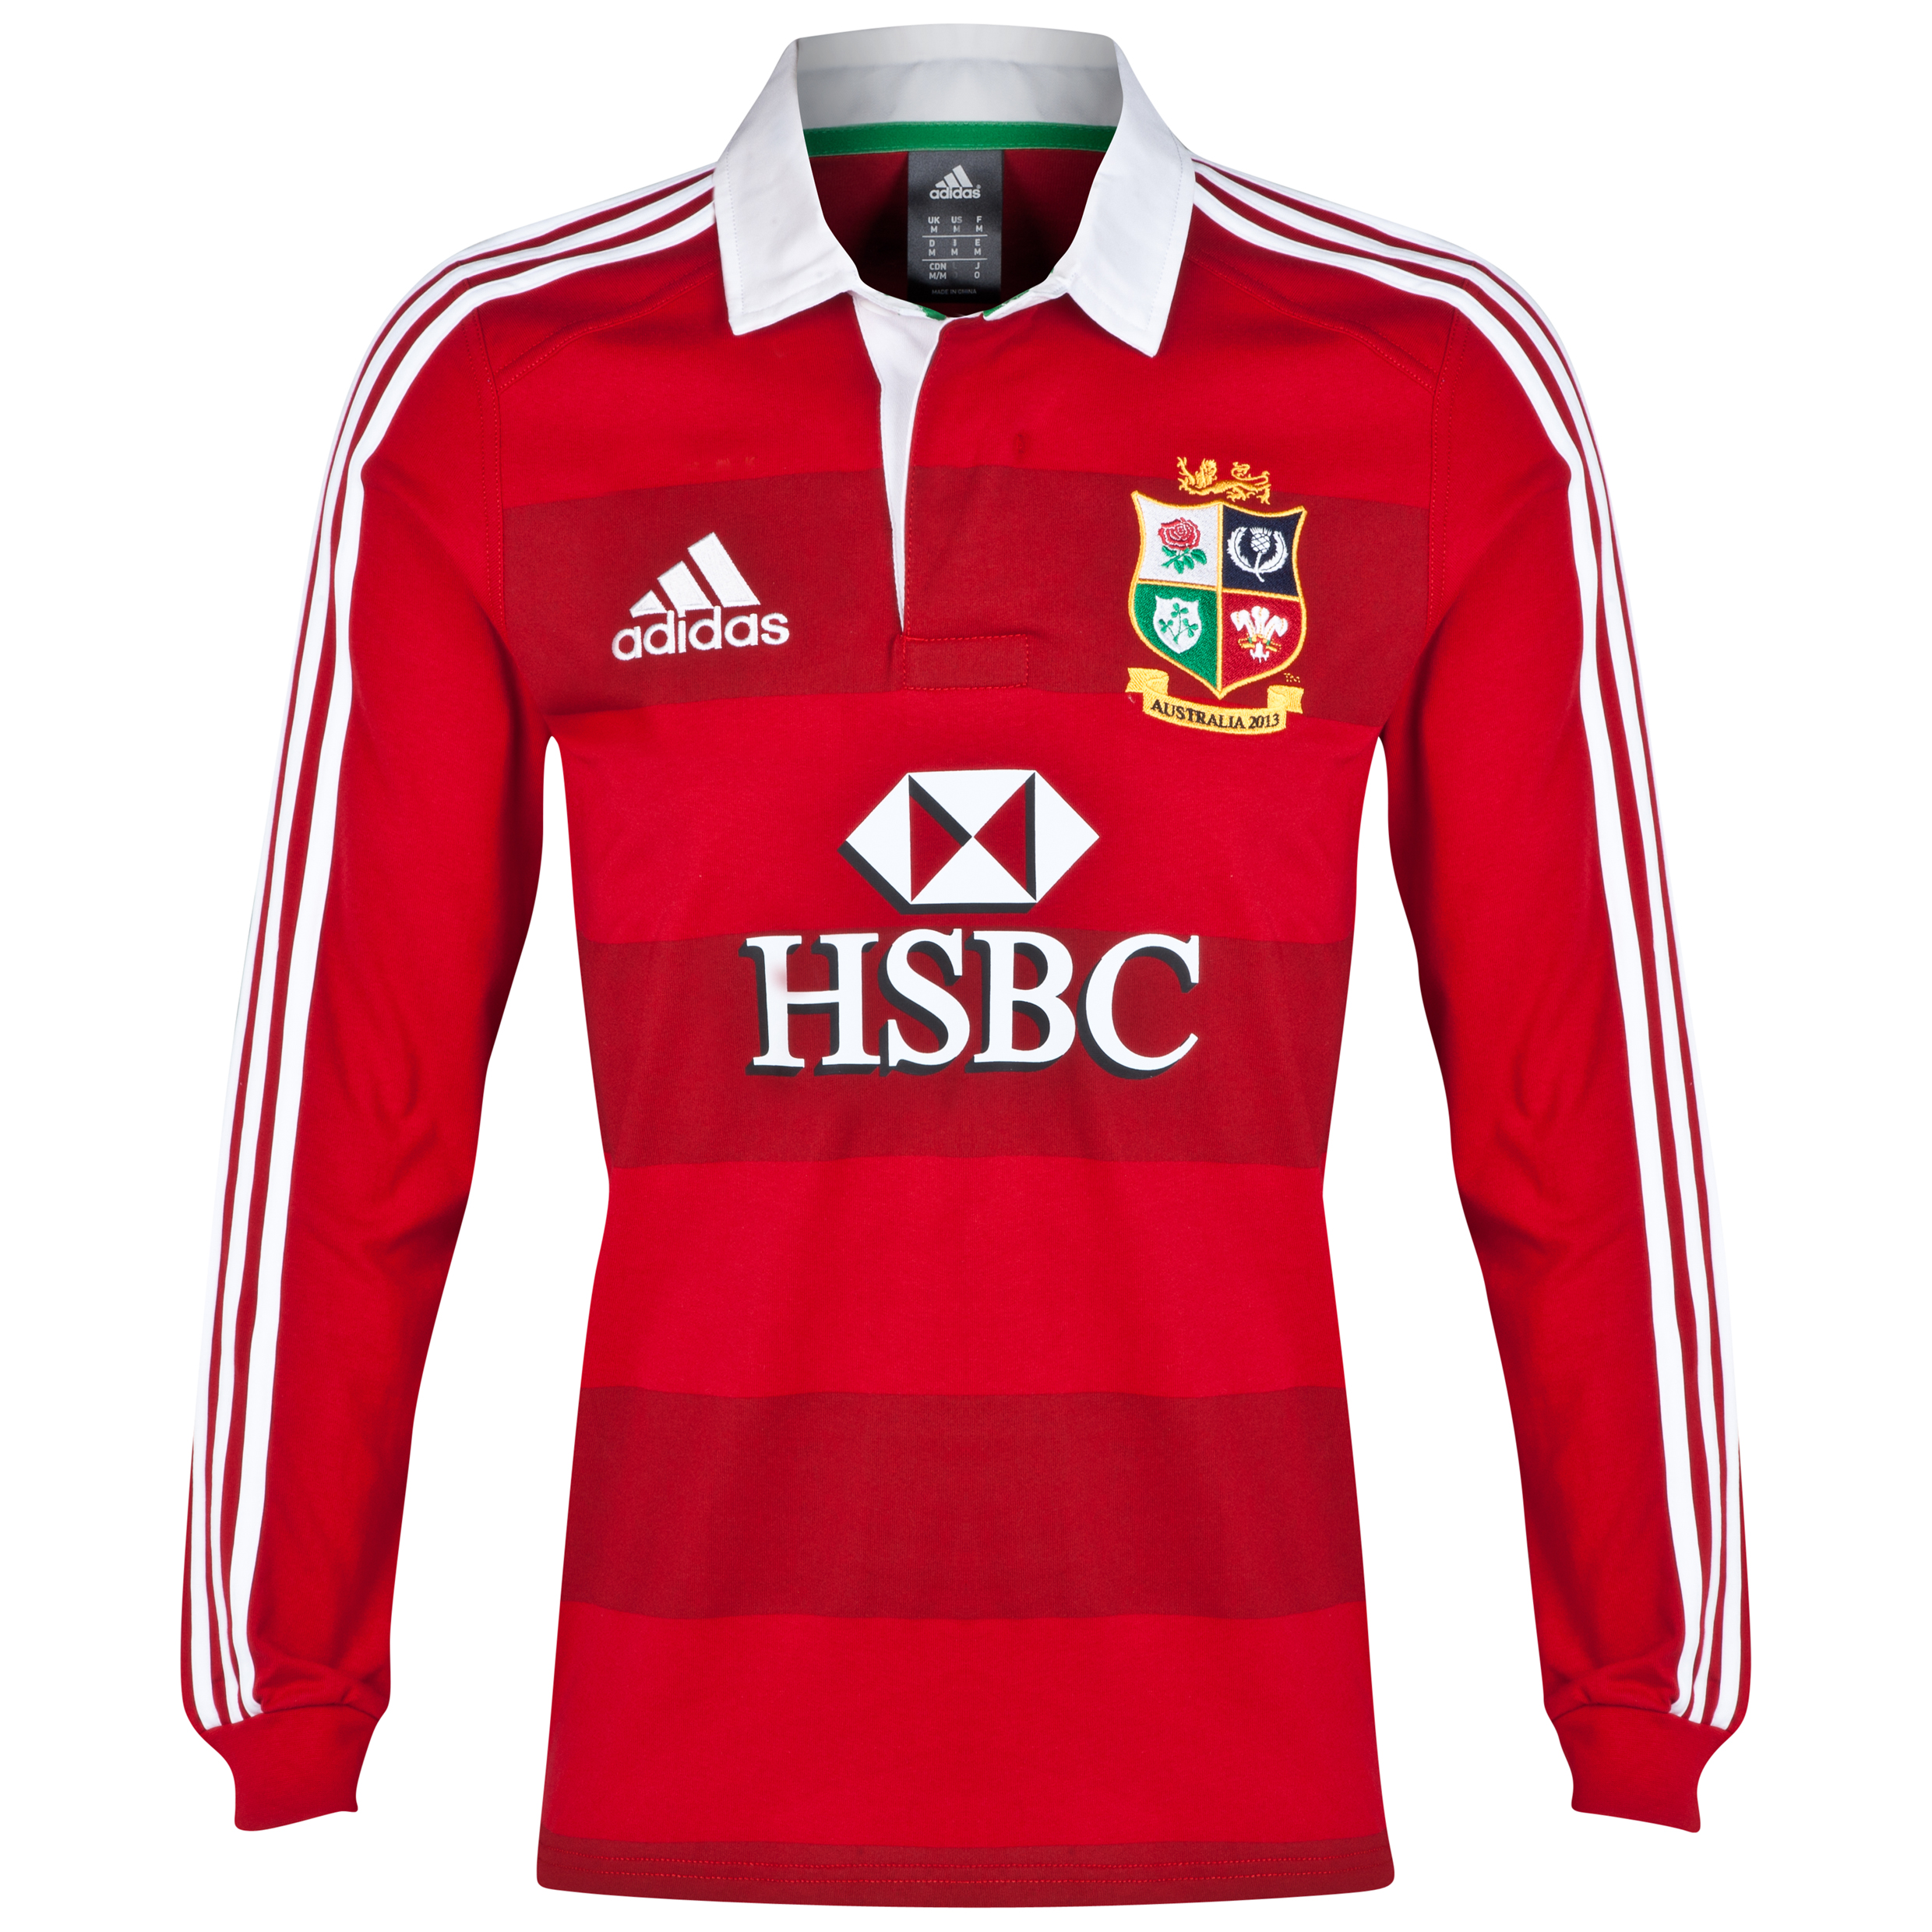 British & Irish Lions Supporters Shirt - Long Sleeve - University Red/White